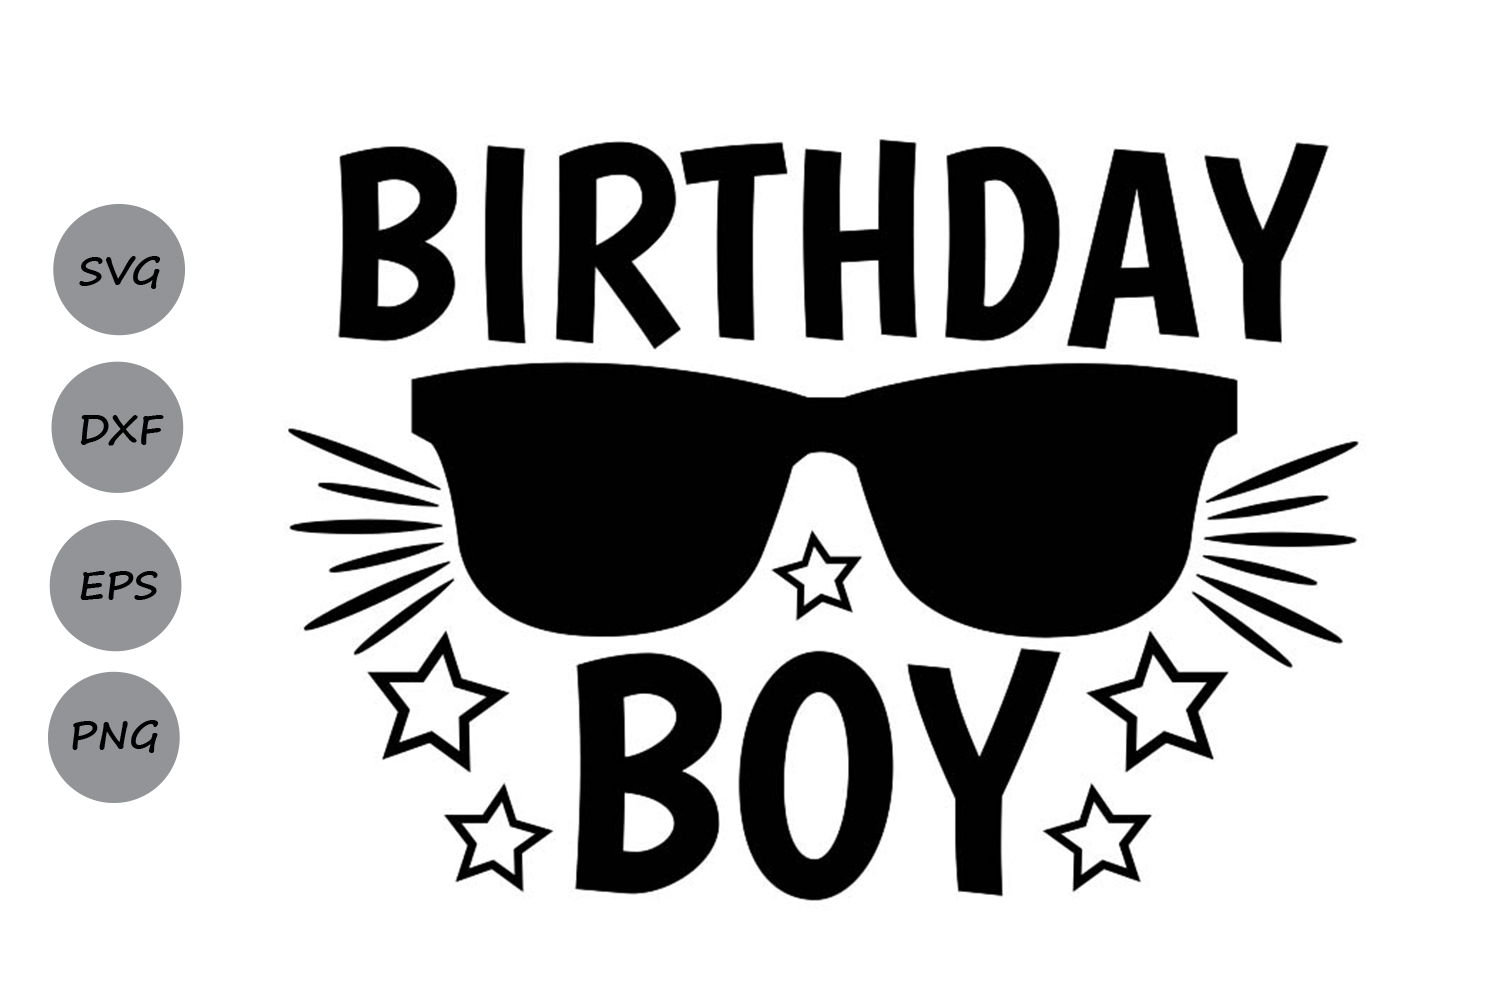 Download Free Birthday Boy Graphic By Cosmosfineart Creative Fabrica for Cricut Explore, Silhouette and other cutting machines.